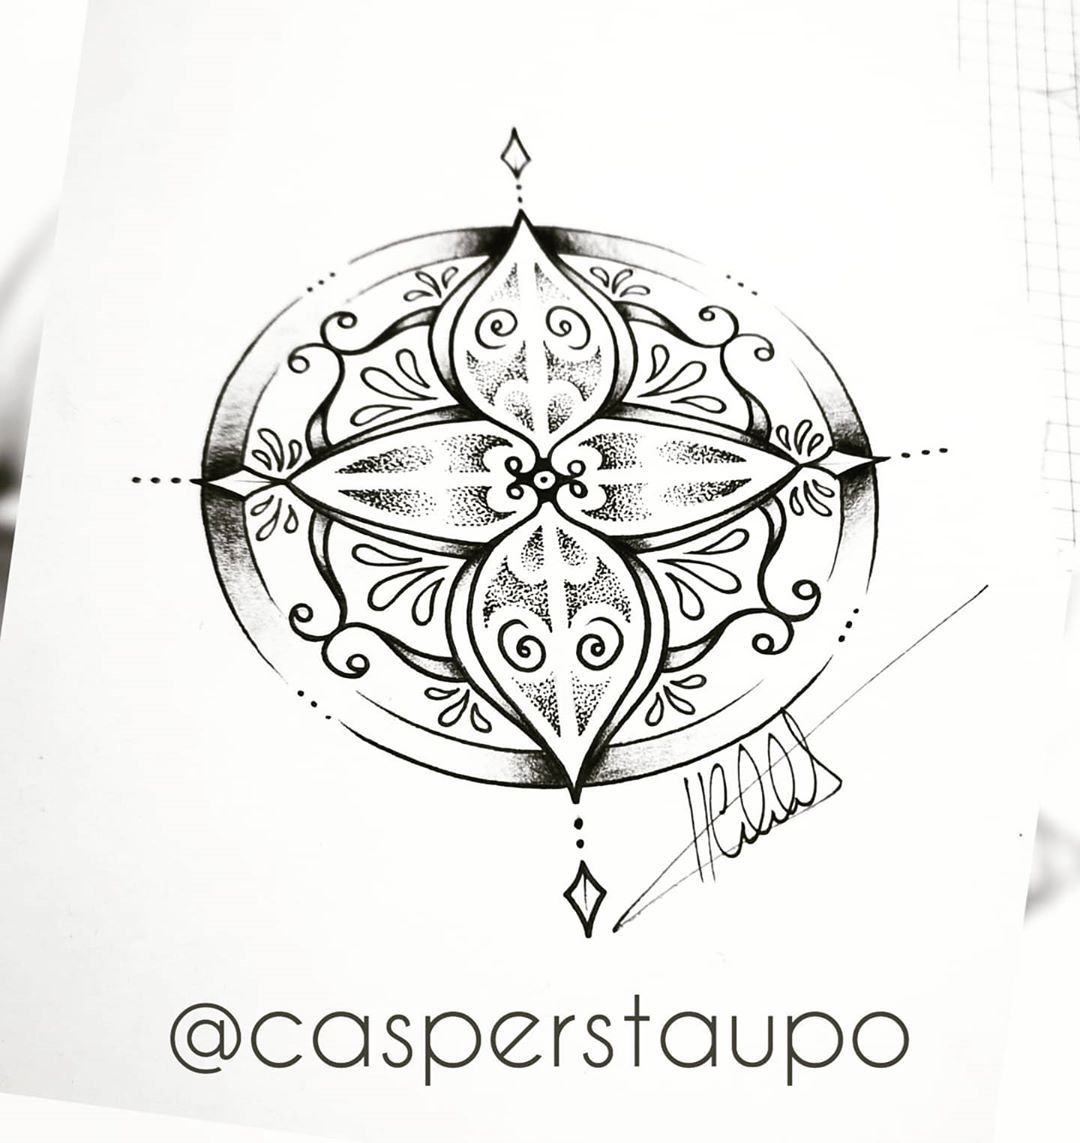 Thanks for the support guys. An enjoying the tike to draw some designs. Heres another one for sale. #covid_19 #covidchallenge #nz #inkjectanano #tatt #tattoo #tattoos #ink #mandalas #mandalatattoo #dotworktattoo #dots #dotwork #finelinetattoo #inked #mandalaart #designforsale #tattoodesigns